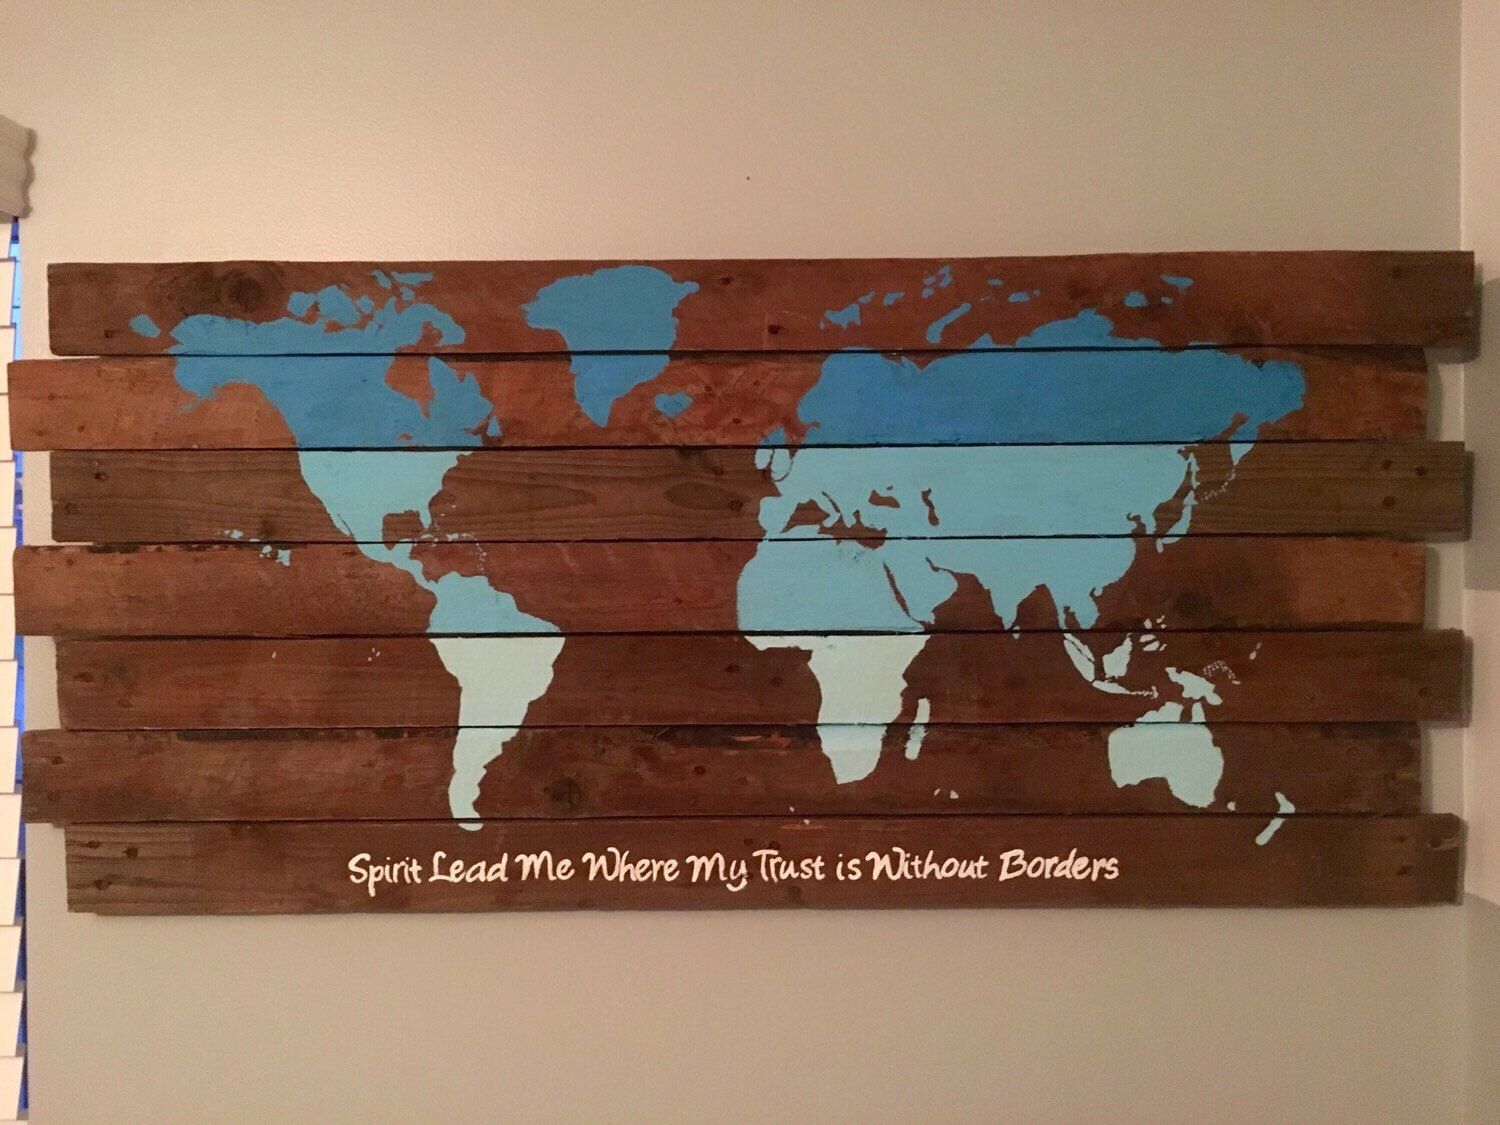 A personal favorite from my etsy shop httpsetsylisting items similar to rustic world map world map wood pallet spirit lead me where my trust is without borders pallet art mission trip map on etsy gumiabroncs Choice Image